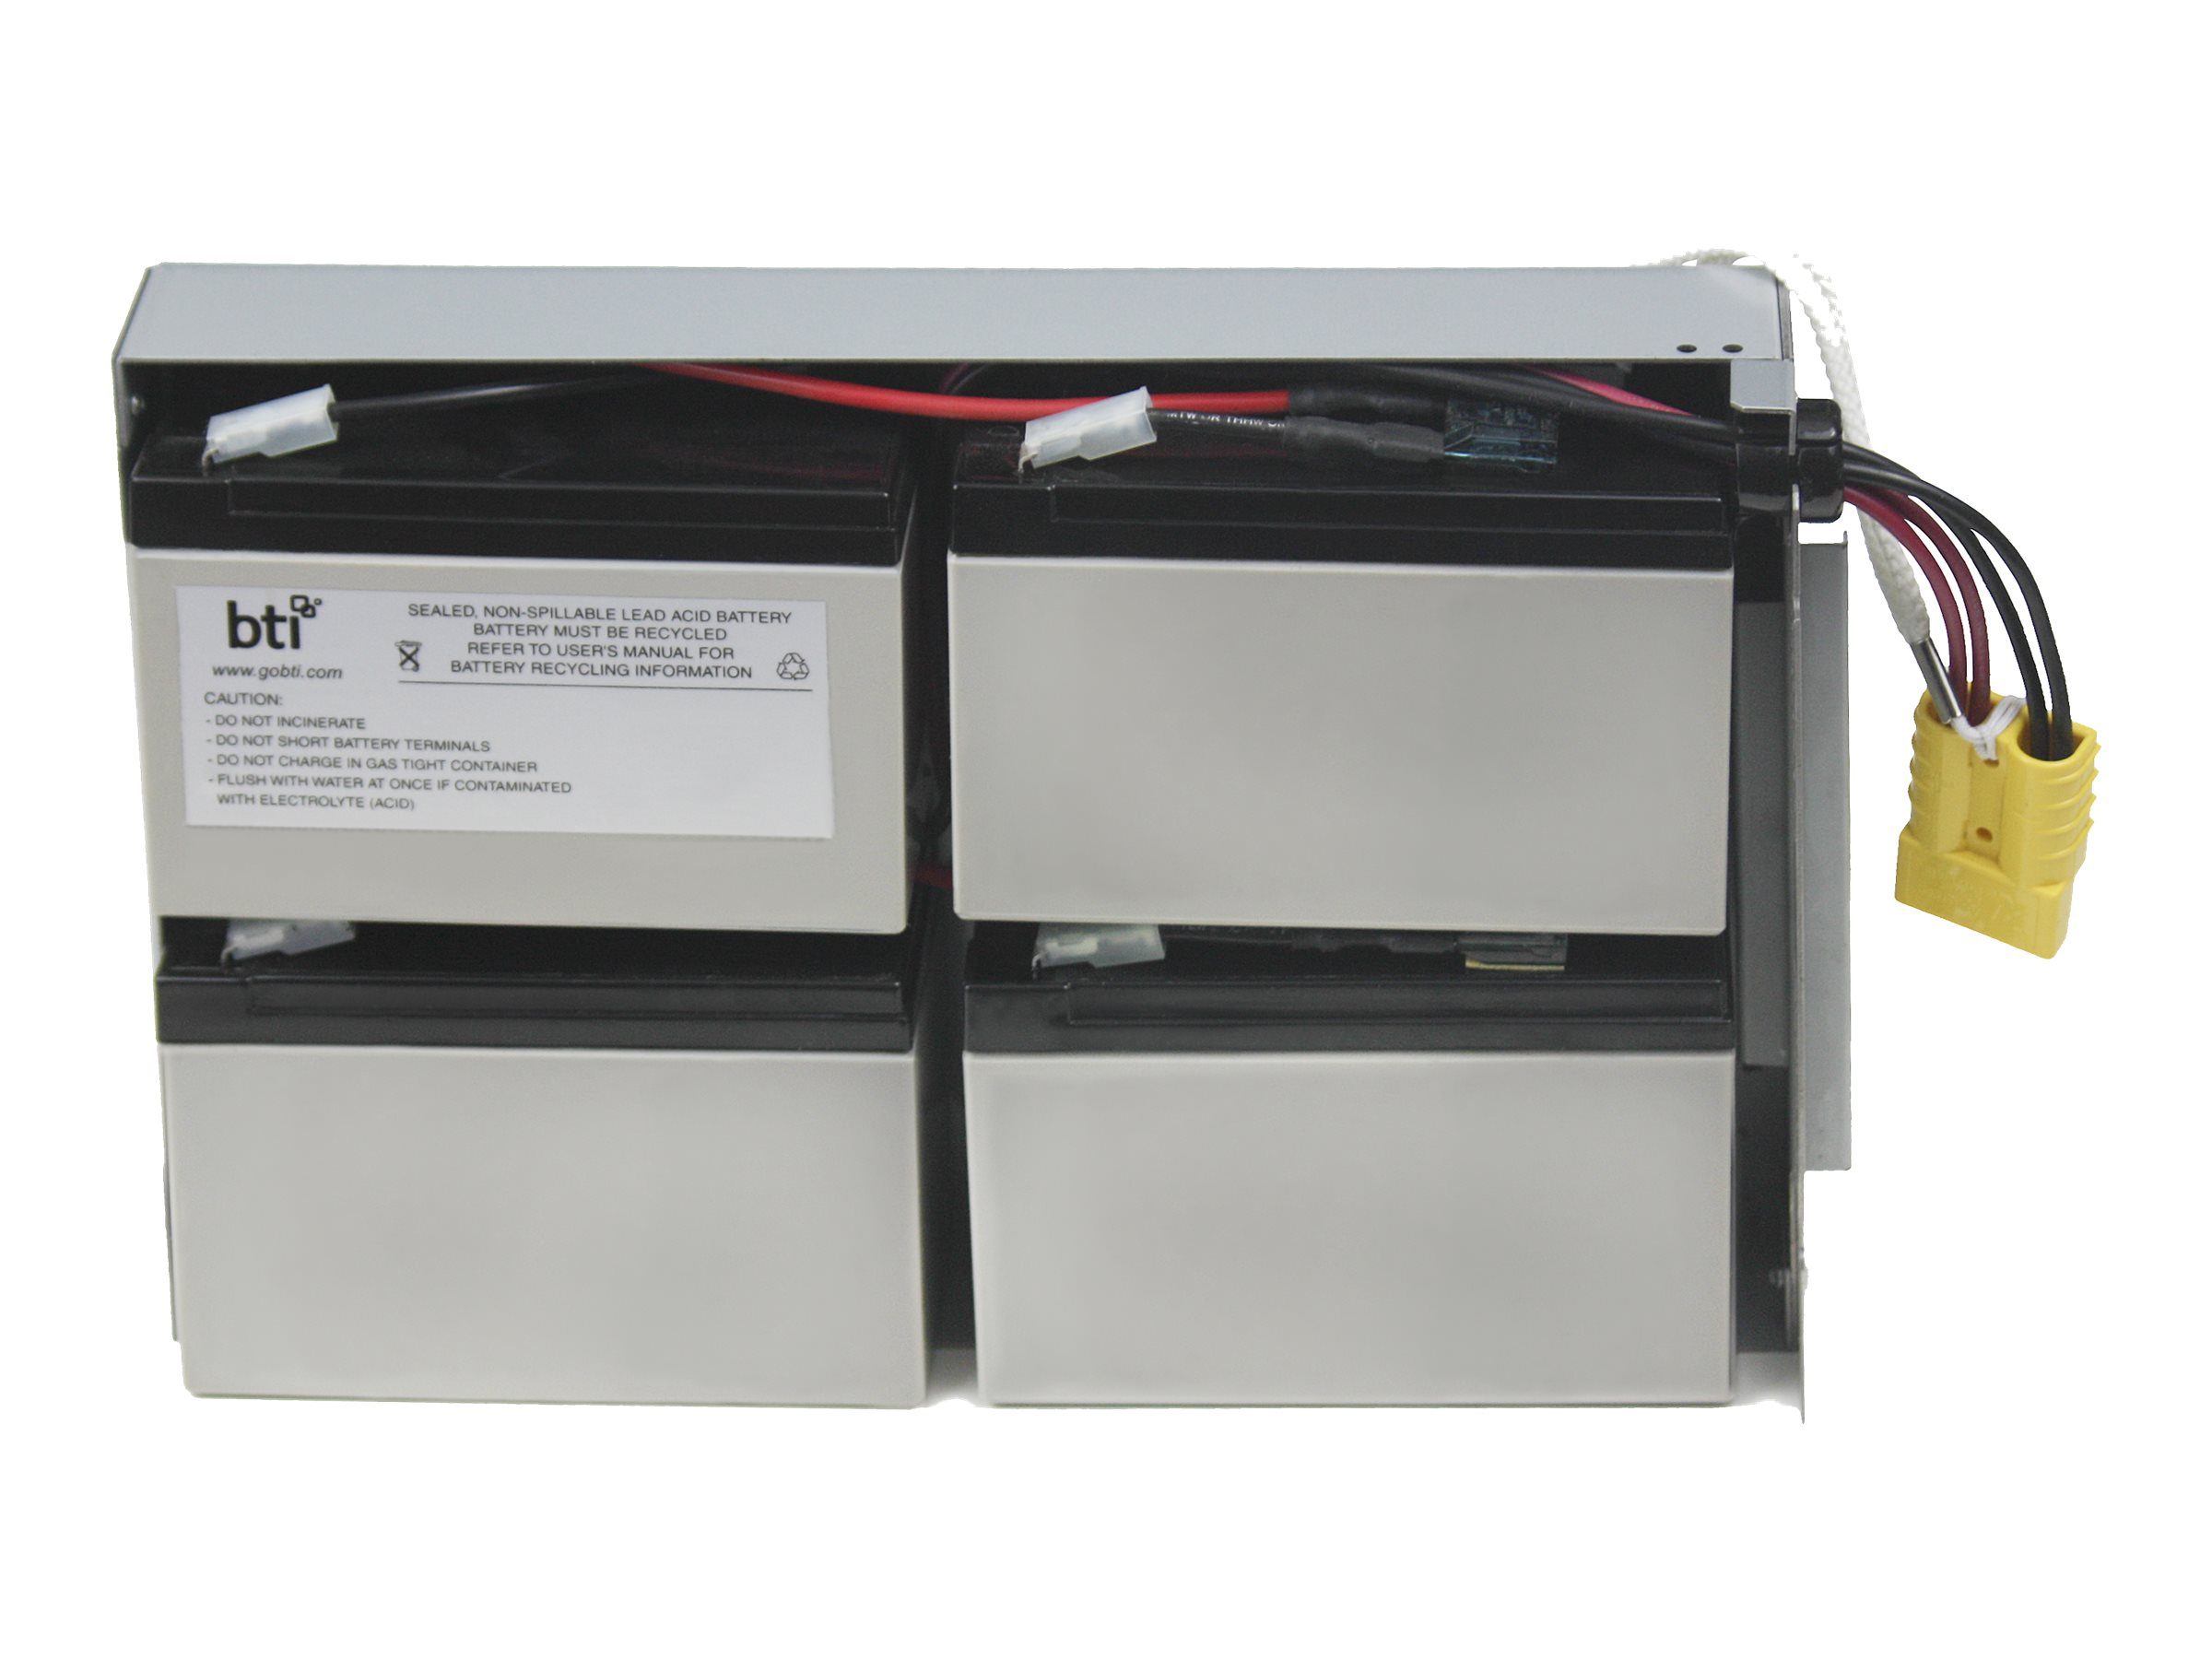 BTI Replacement Battery, RBC24, for APC SU1400RM2U, SUA1500RM2U, DLA1500RM2U Models, RBC24-SLA24-BTI